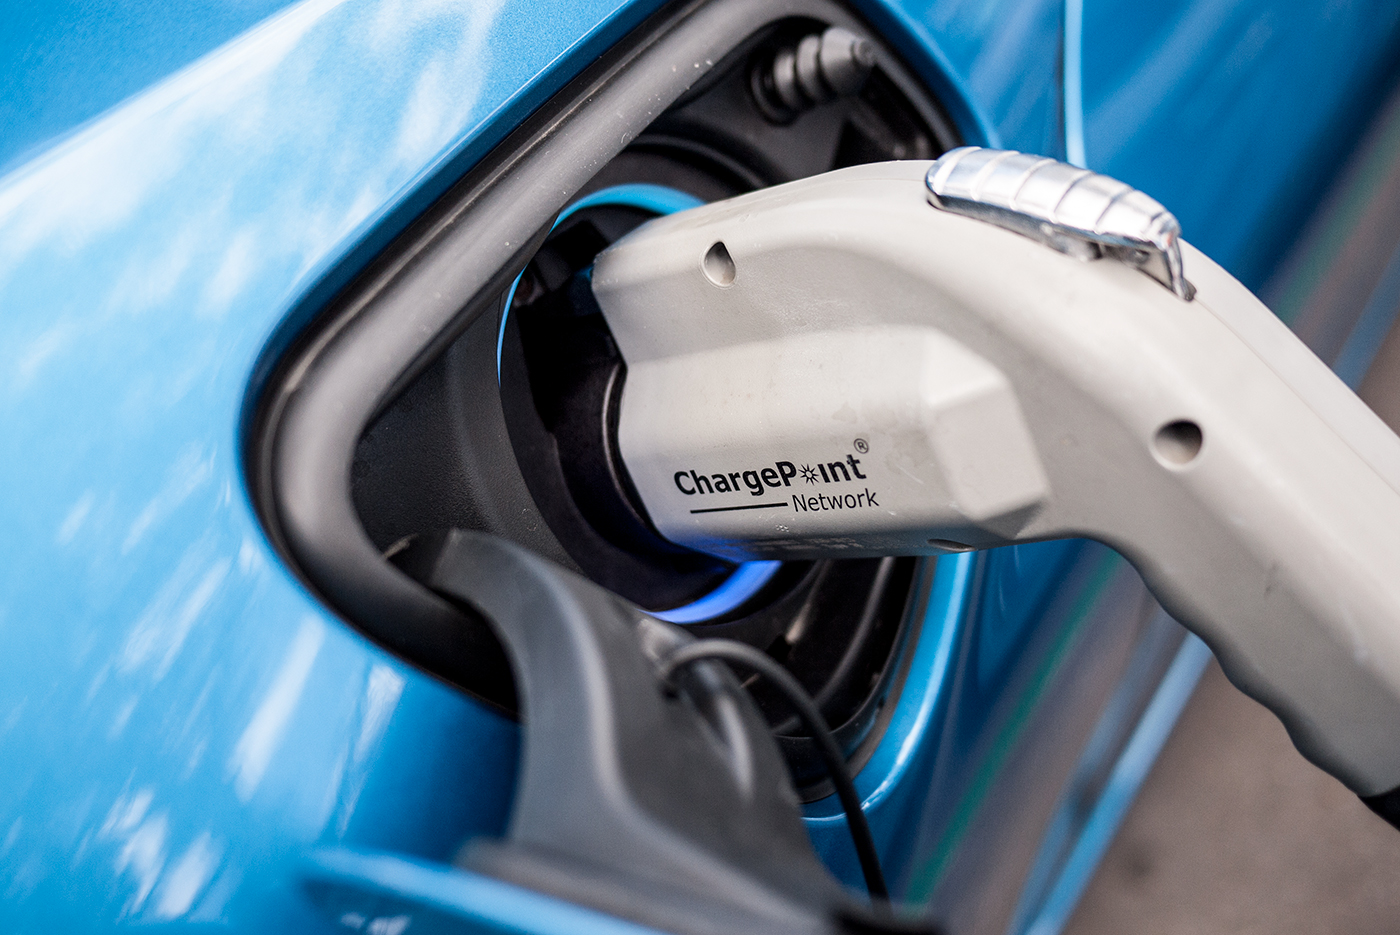 Indian Govt Ramps Up EV Incentives, Australian Buyers Still Go Without